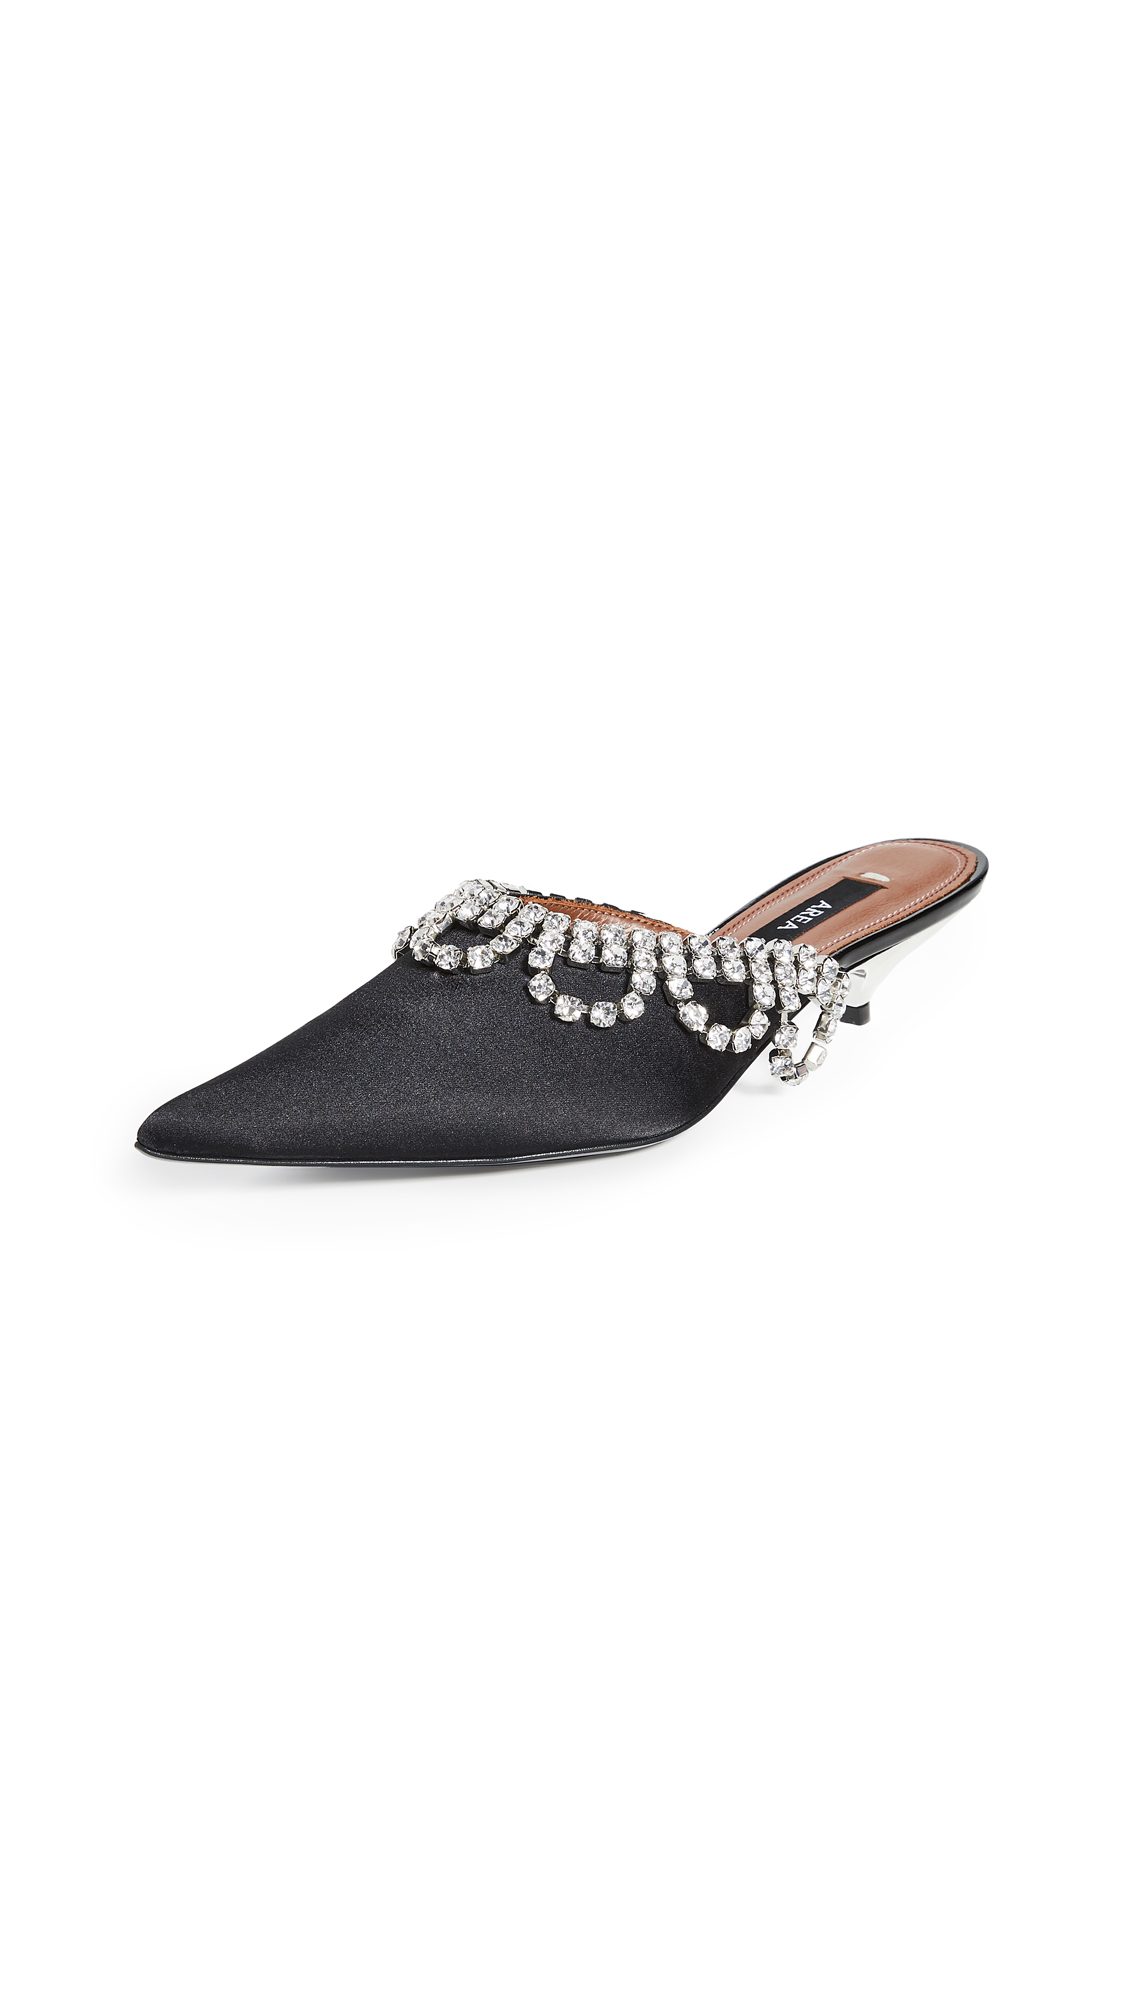 Buy Area Scalloped Crystal A Mules online, shop Area